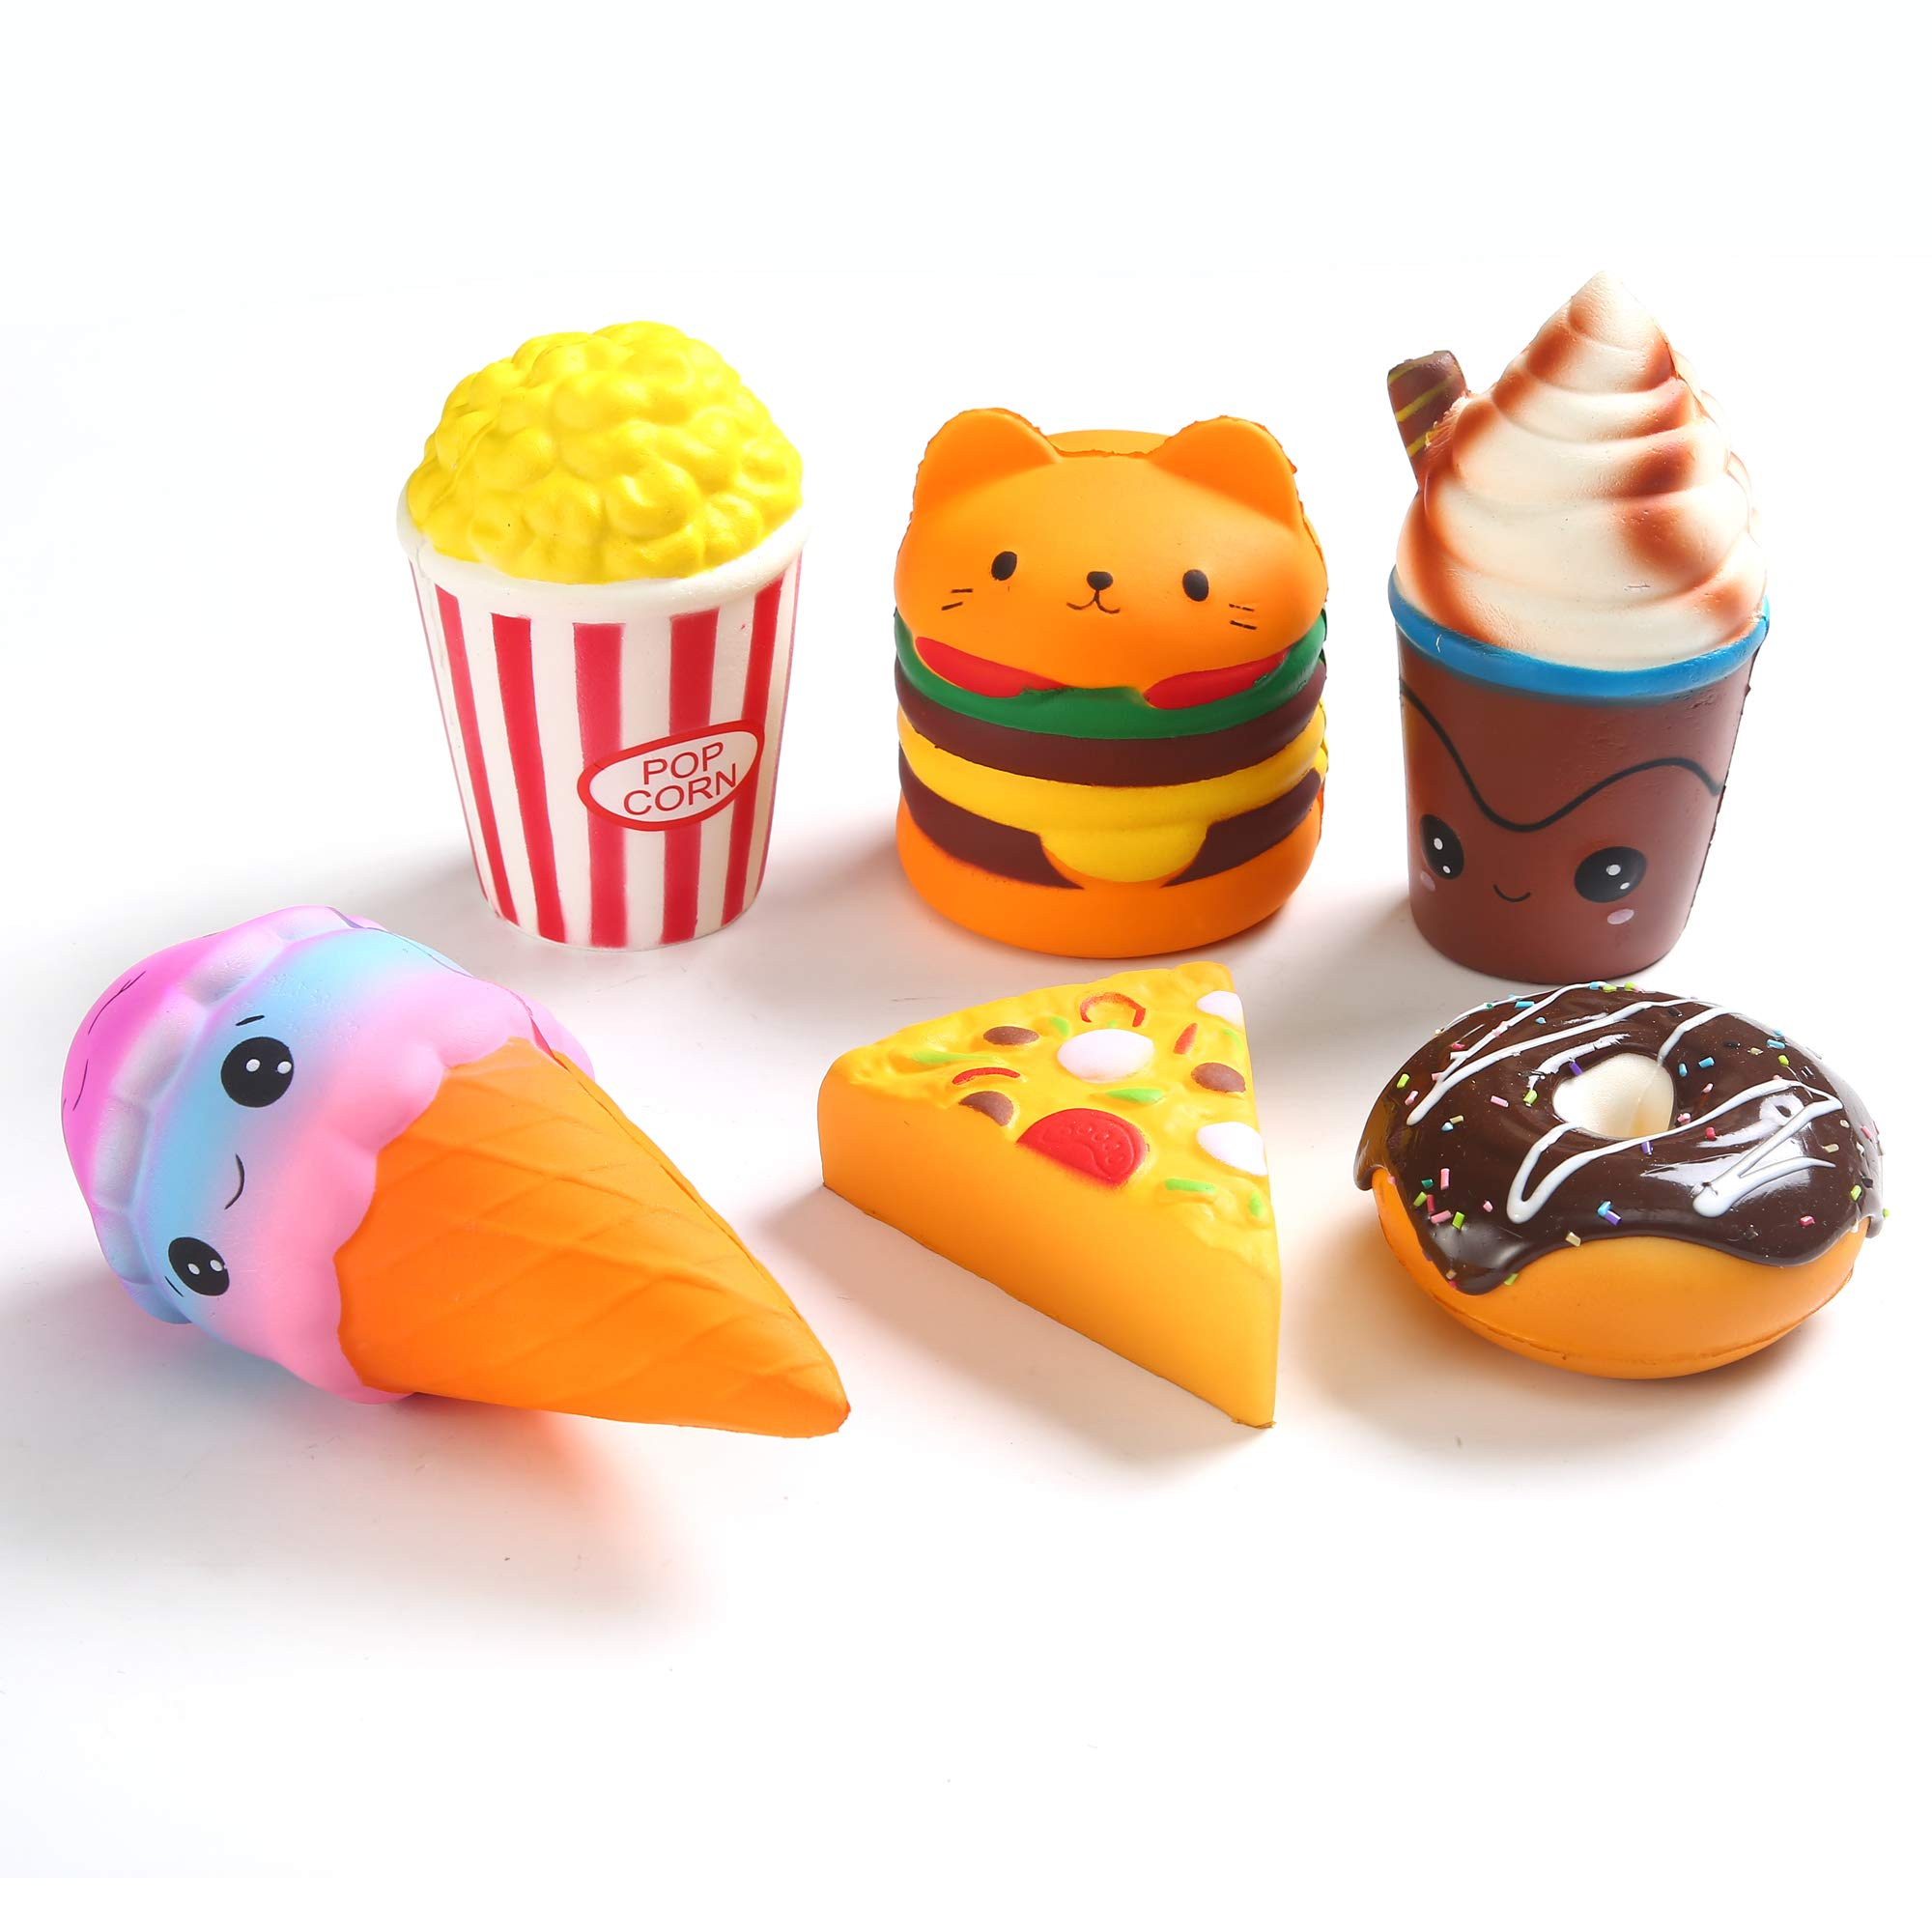 Kingyao 6pcs Slow Rising squishies Squishy Toys Jumbo squishies, Hamburger Popcorn Cake Ice Cream Pizza Kawaii Squishy Toys or Stress Relief Squeeze Toys Party Favors for Kids Adults Decorative Props by Kingyao